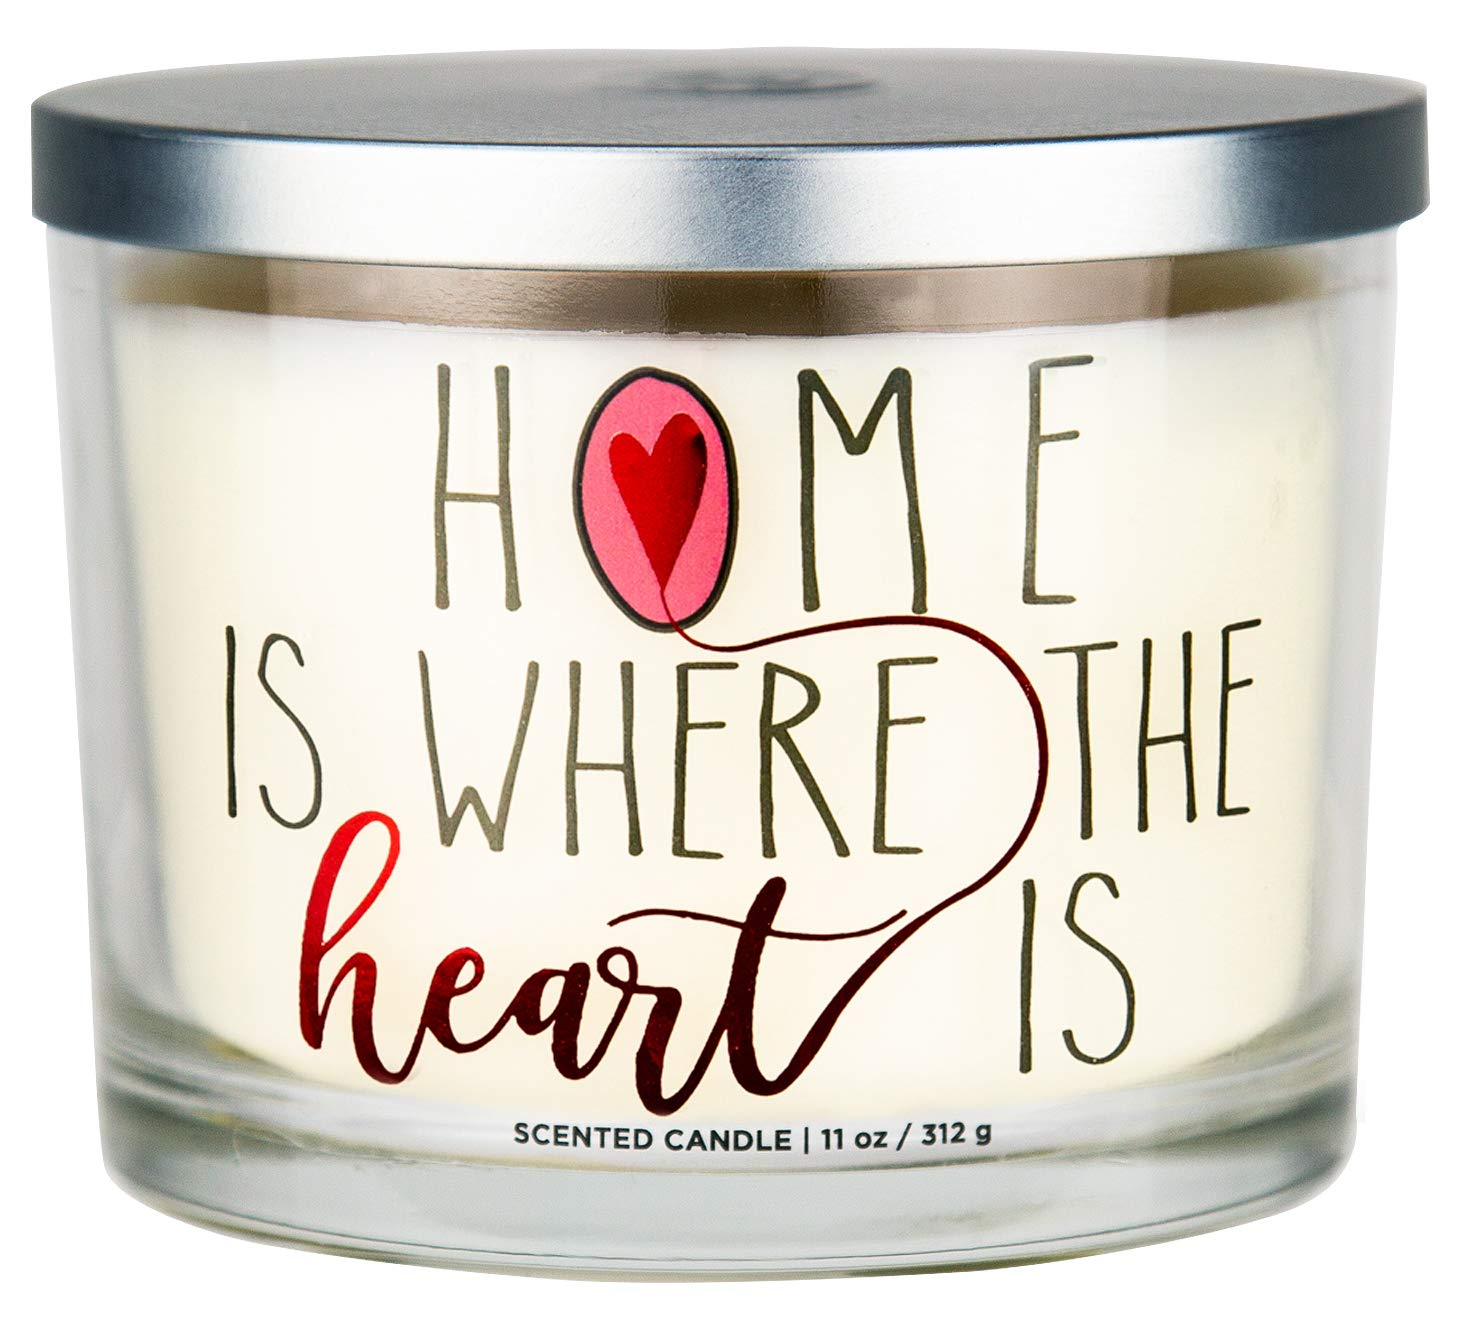 "Aromascape ""Home is Where the Heart Is"" 3-Wick Scented Candle (Brown Sugar Pecan, Cinnamon Bark, and Nutmeg), 11-Ounce"